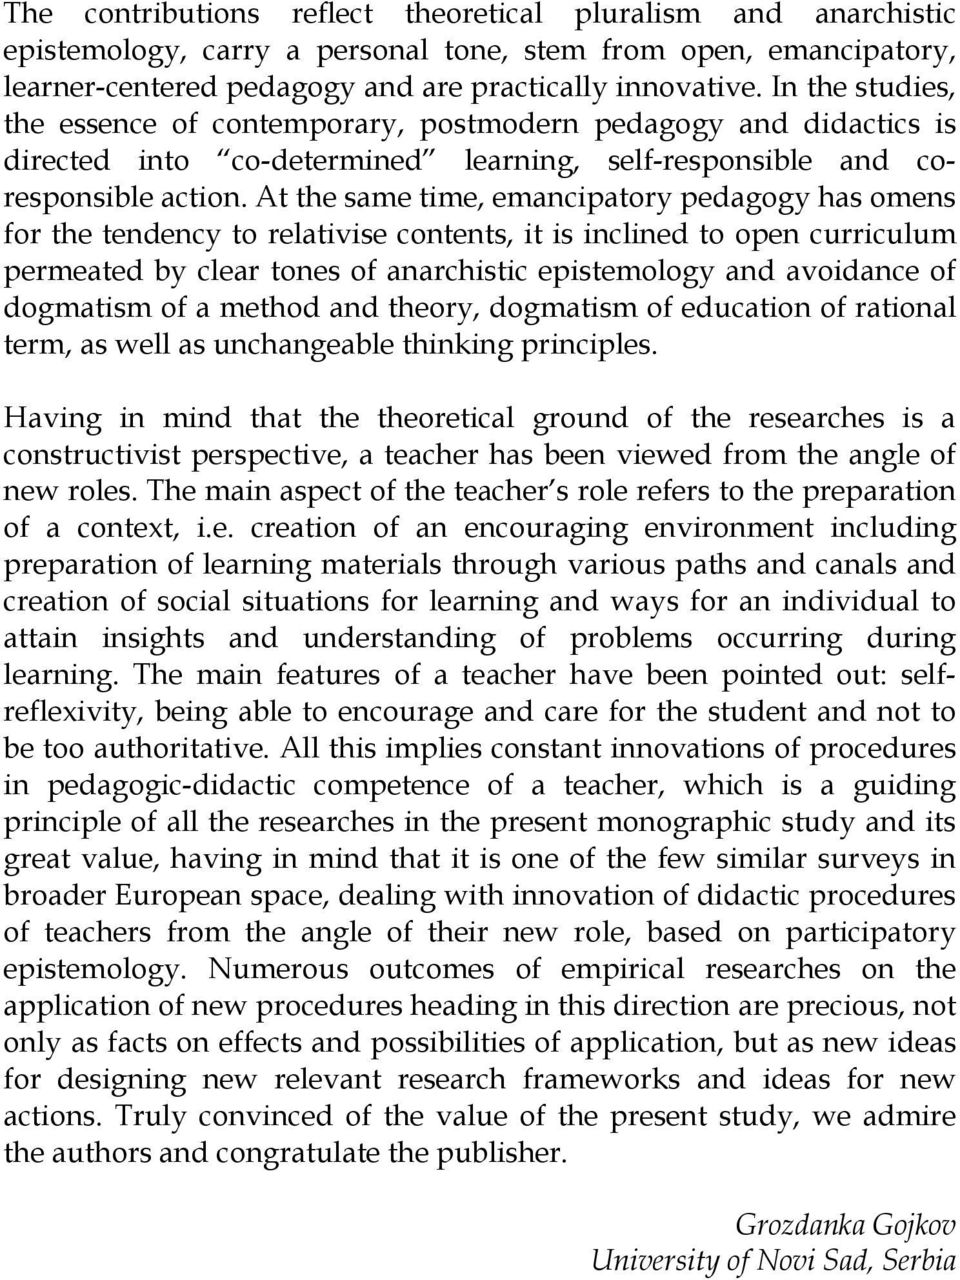 At the same time, emancipatory pedagogy has omens for the tendency to relativise contents, it is inclined to open curriculum permeated by clear tones of anarchistic epistemology and avoidance of